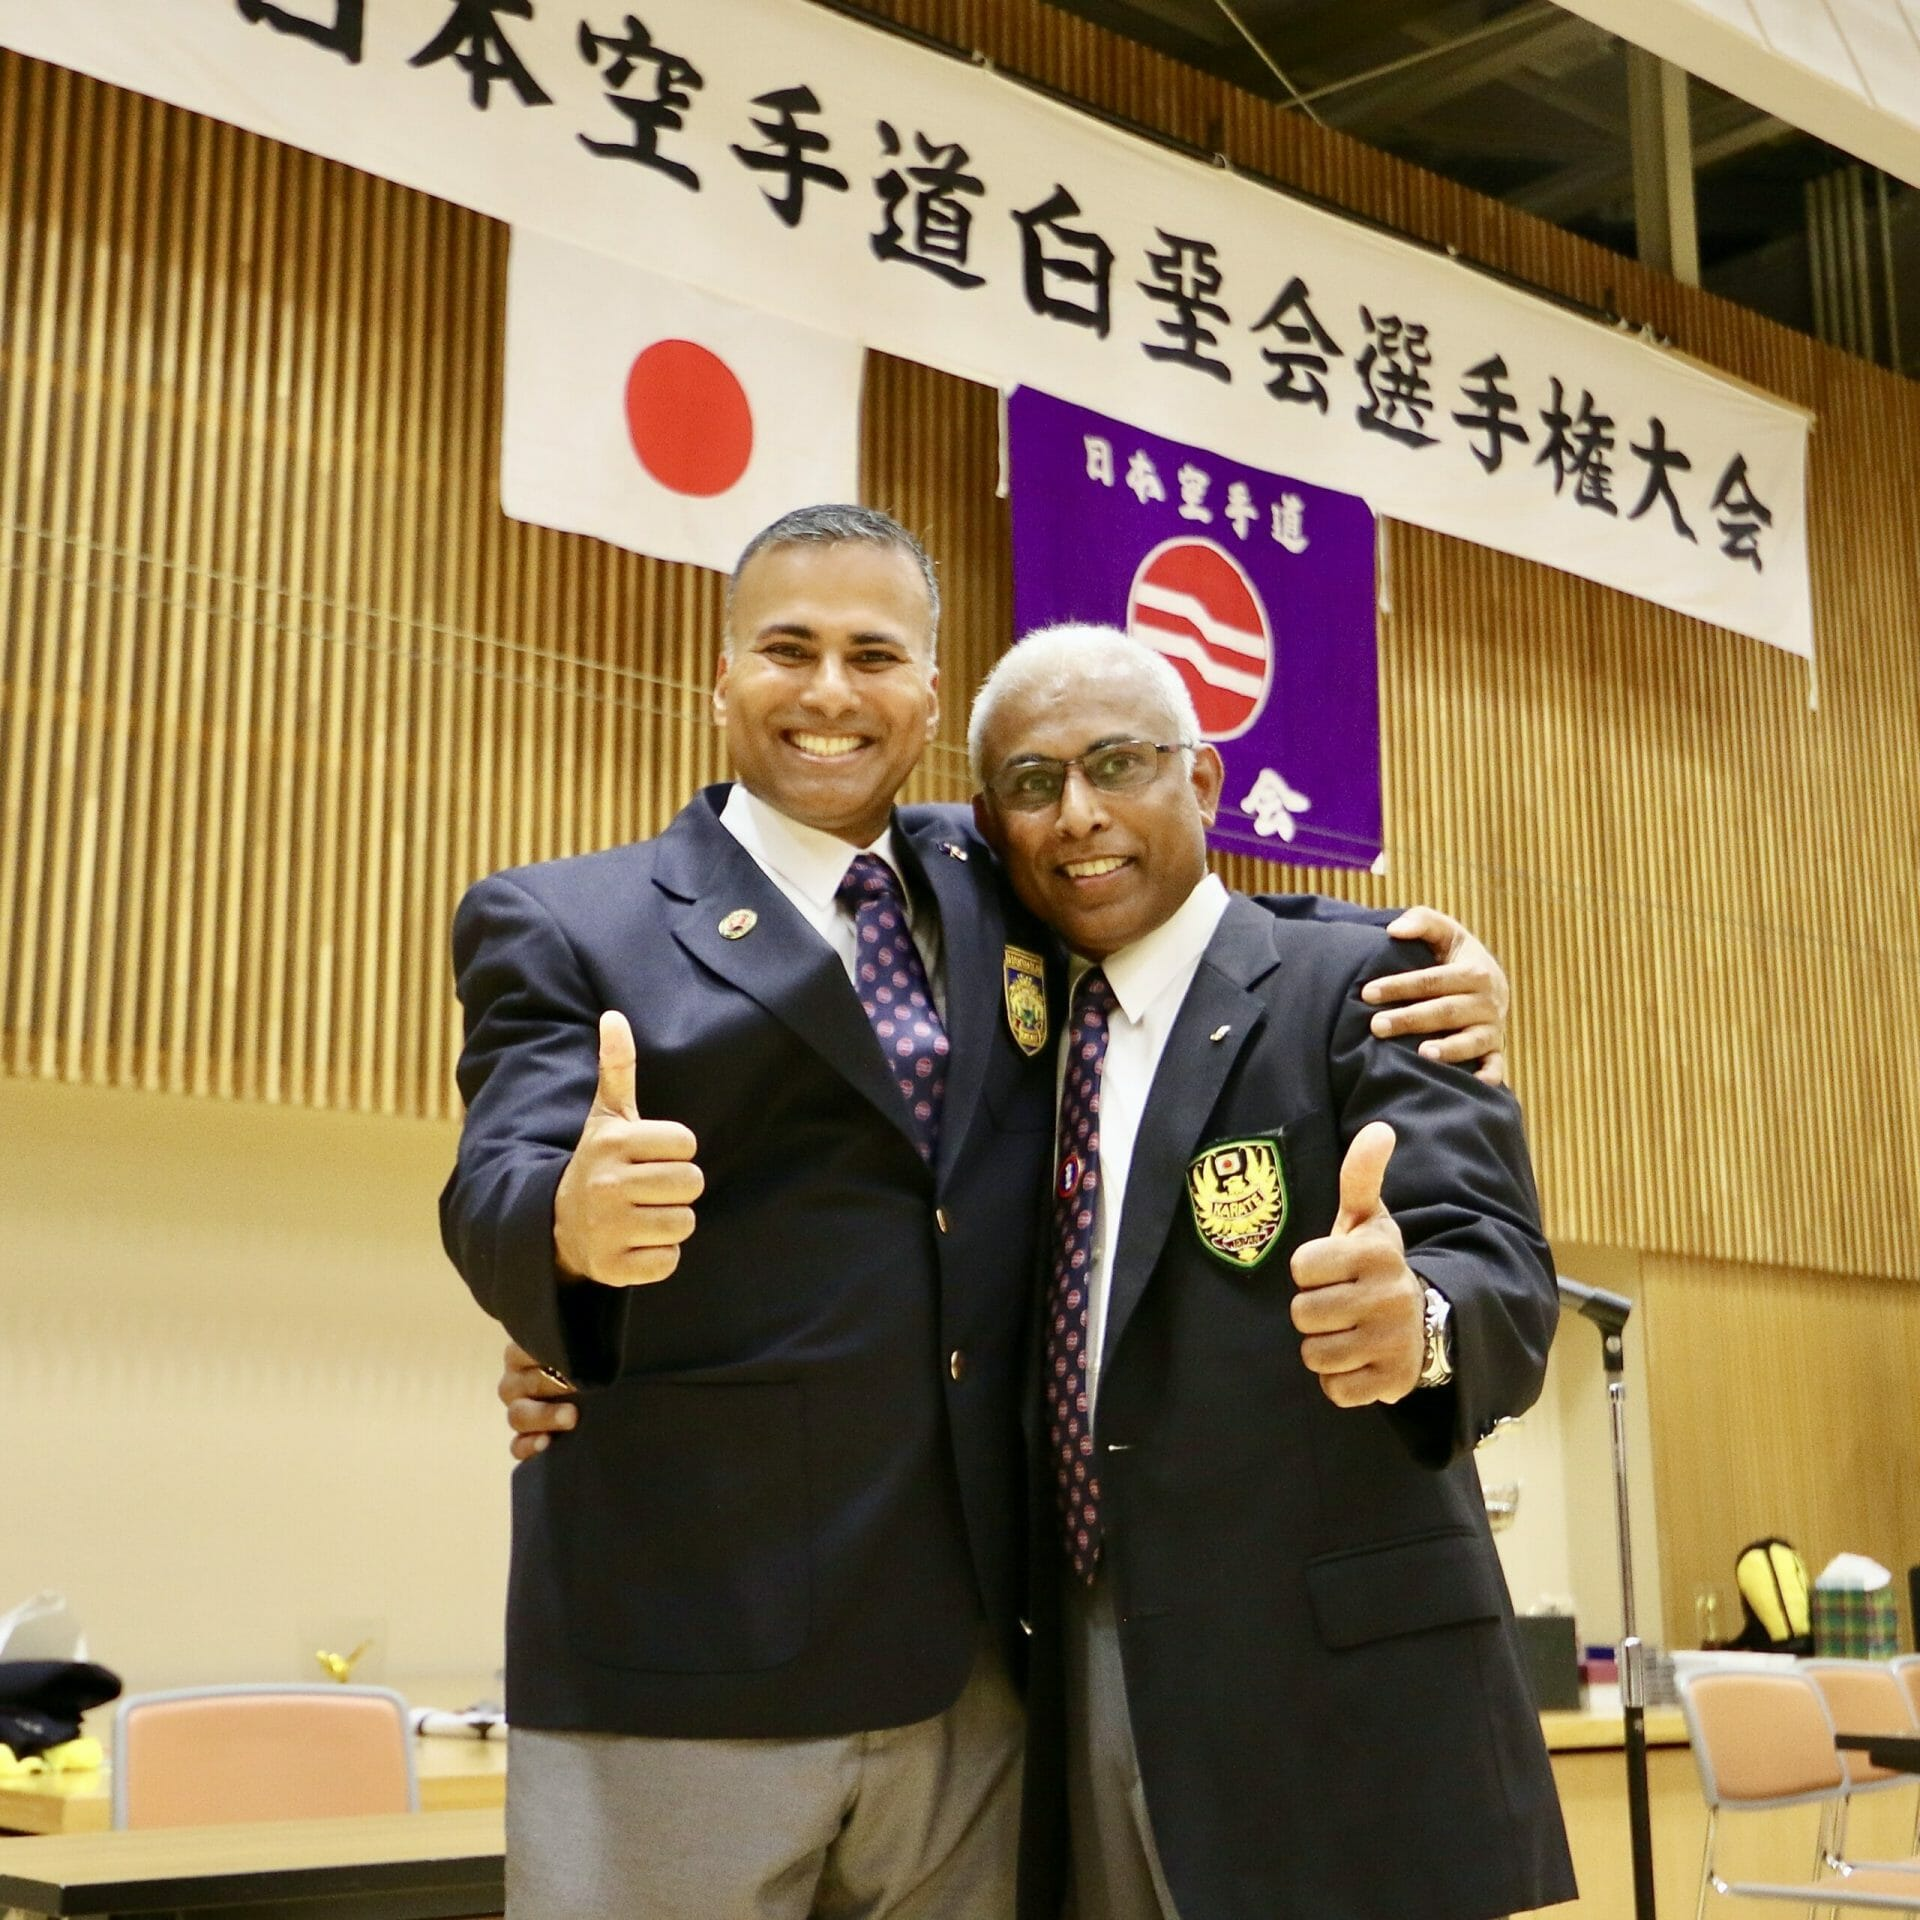 Accredited karate instructors from Japan